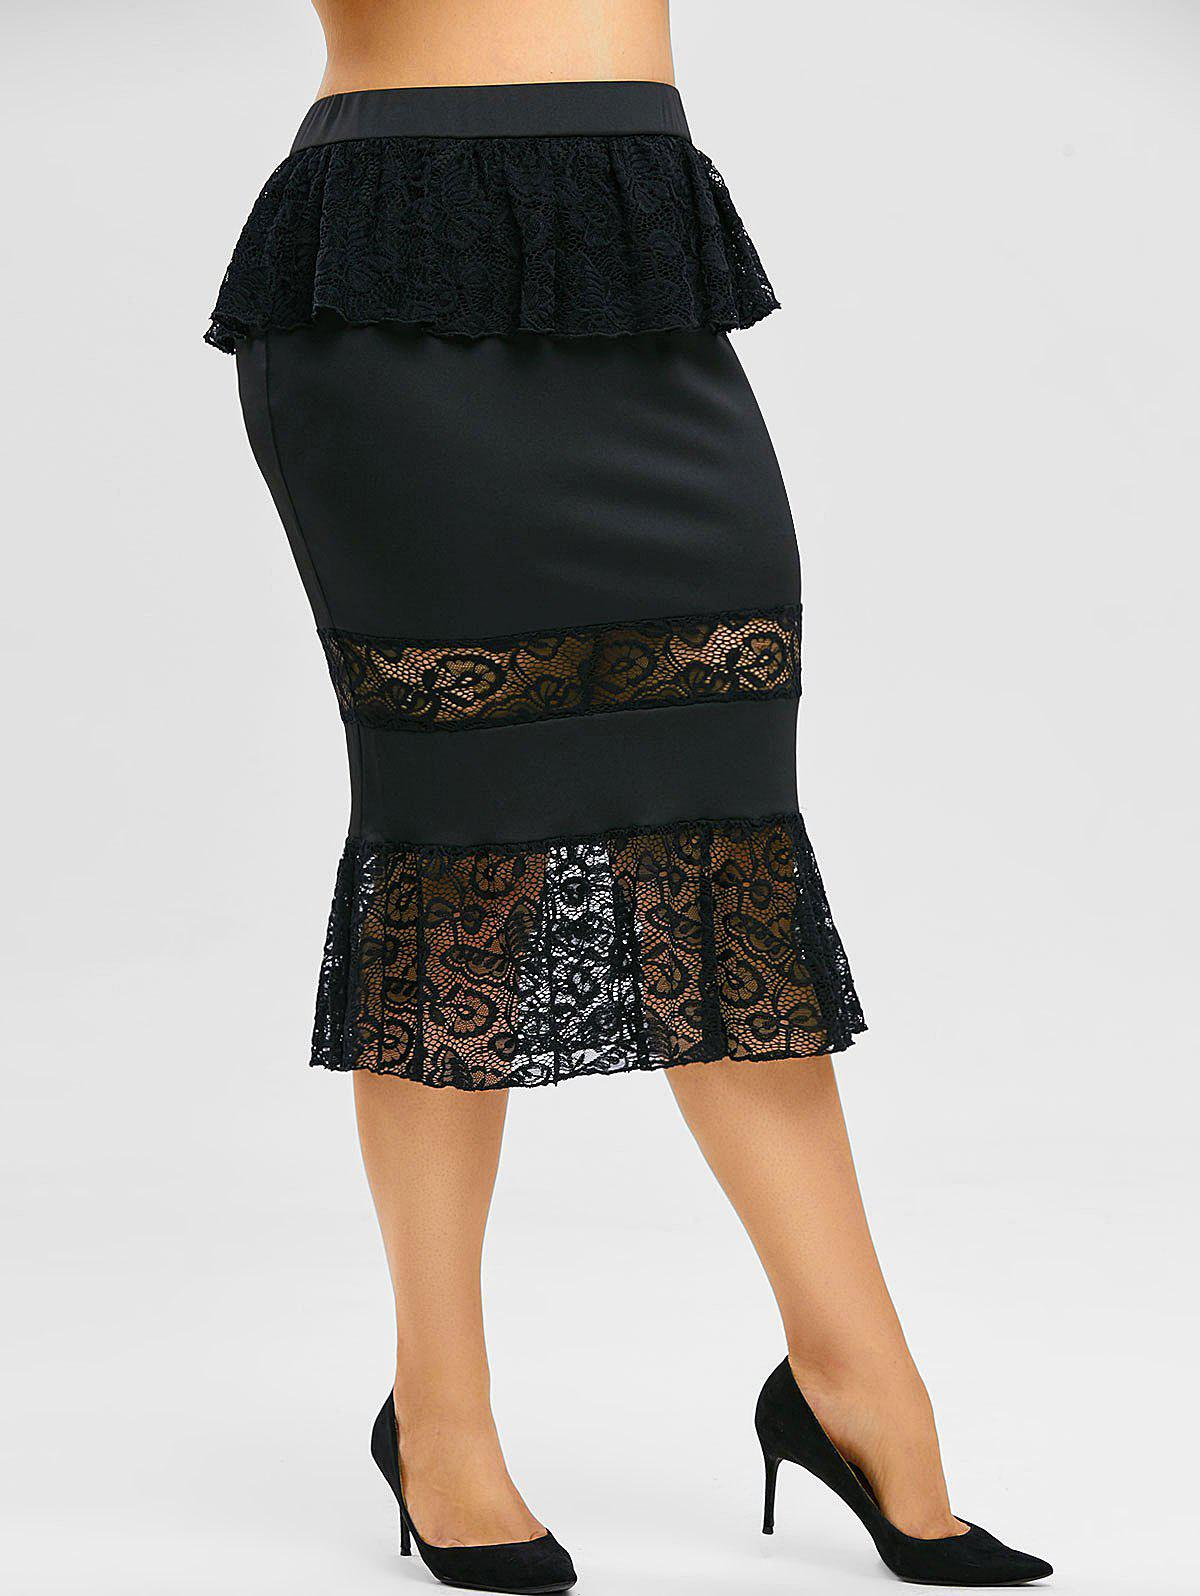 Plus Size Ruffled Lace Insert Midi Fishtail Skirt - BLACK 3X